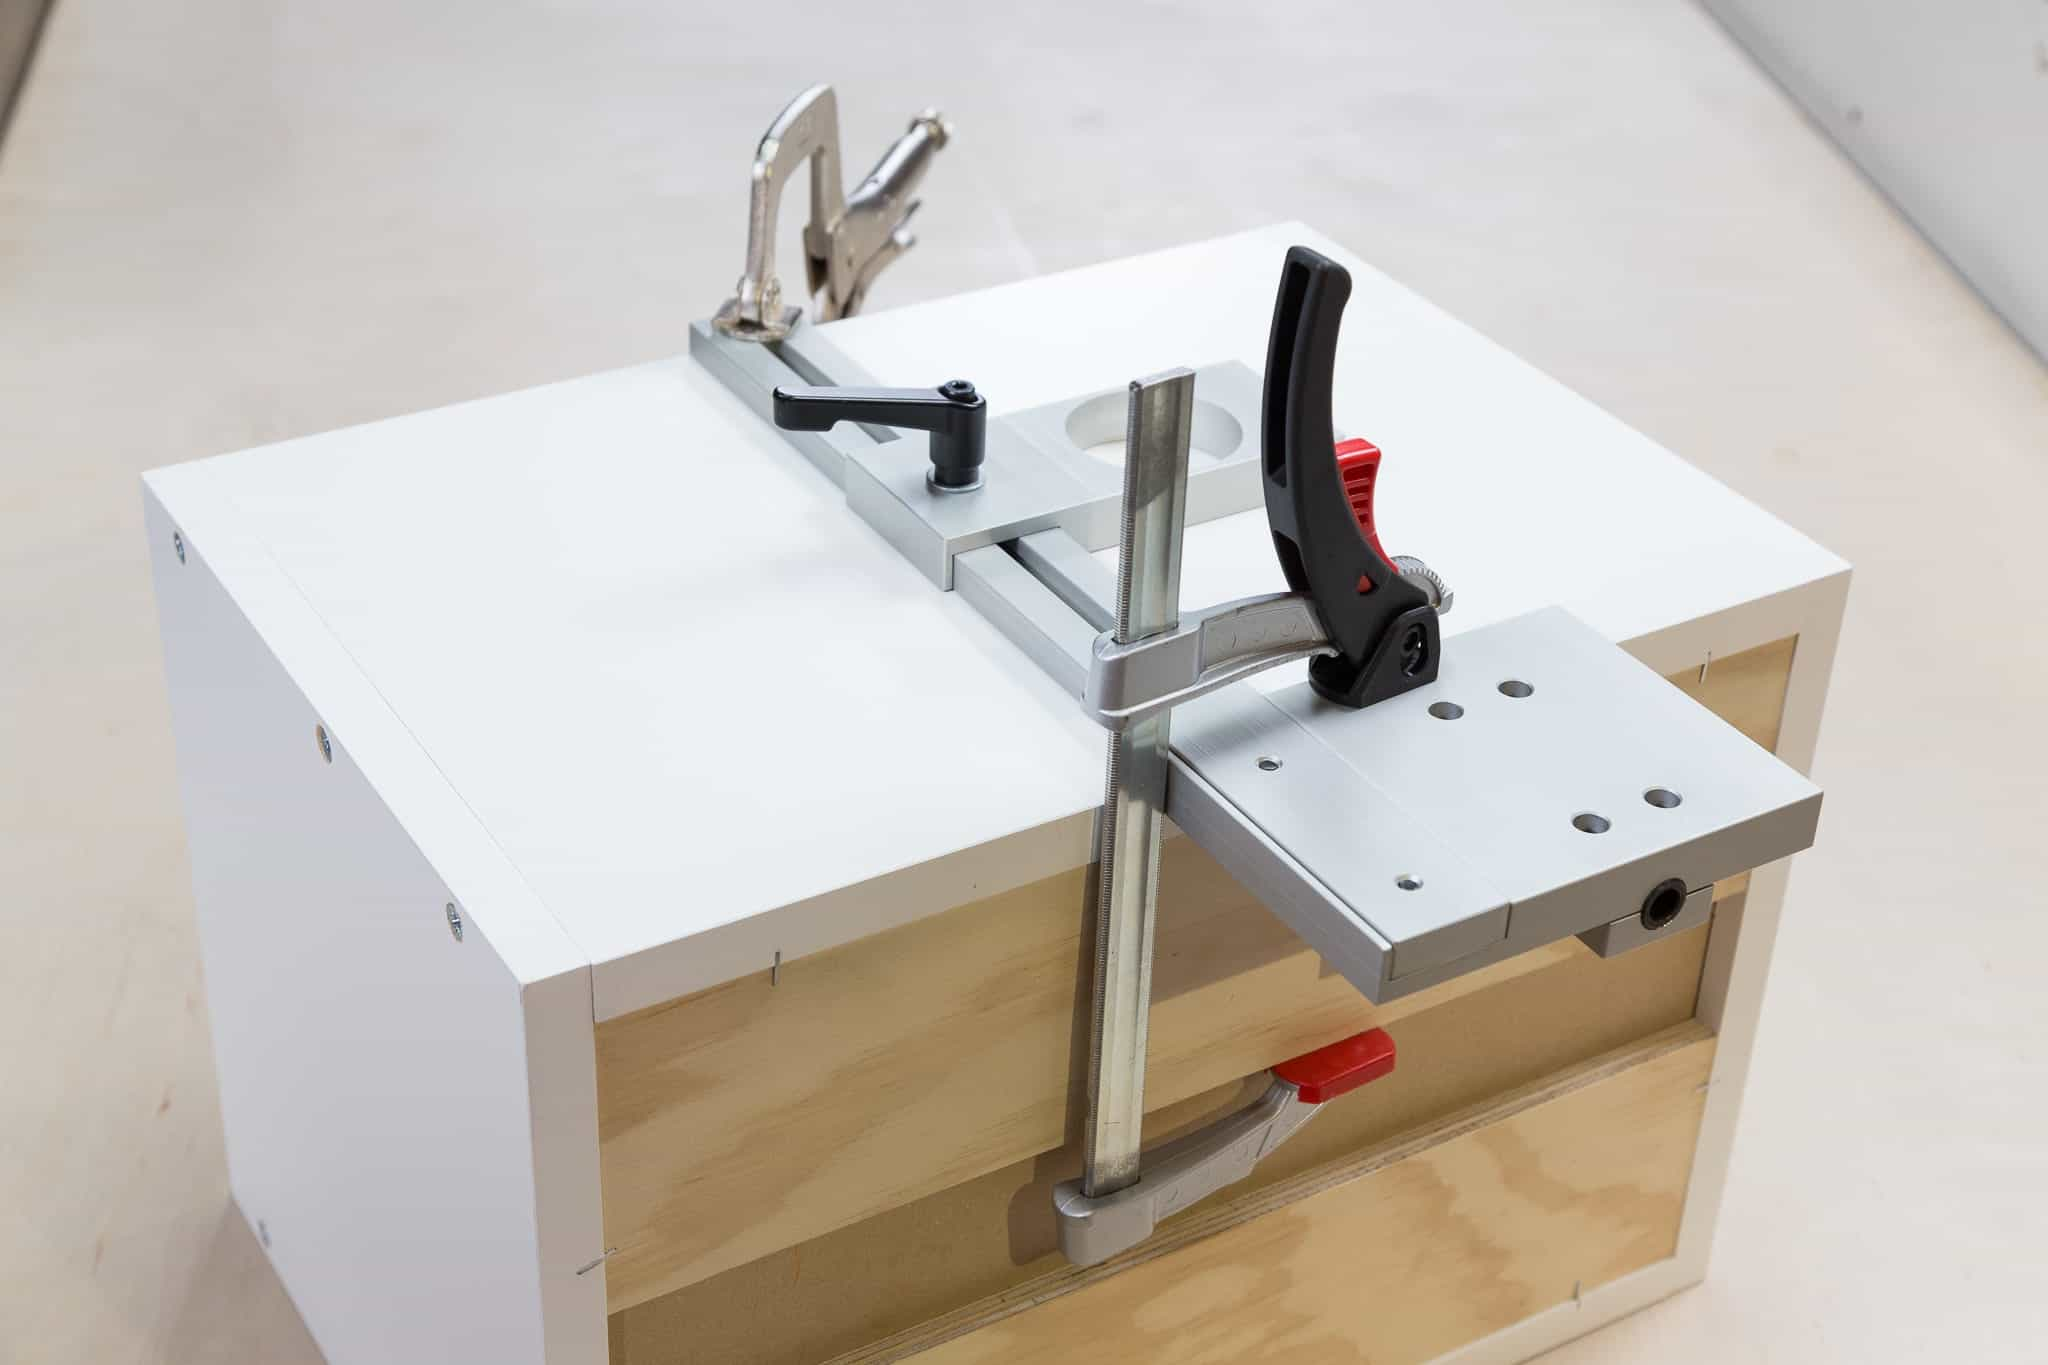 TP-PLJ Puck Light Jig clamped on cabinet